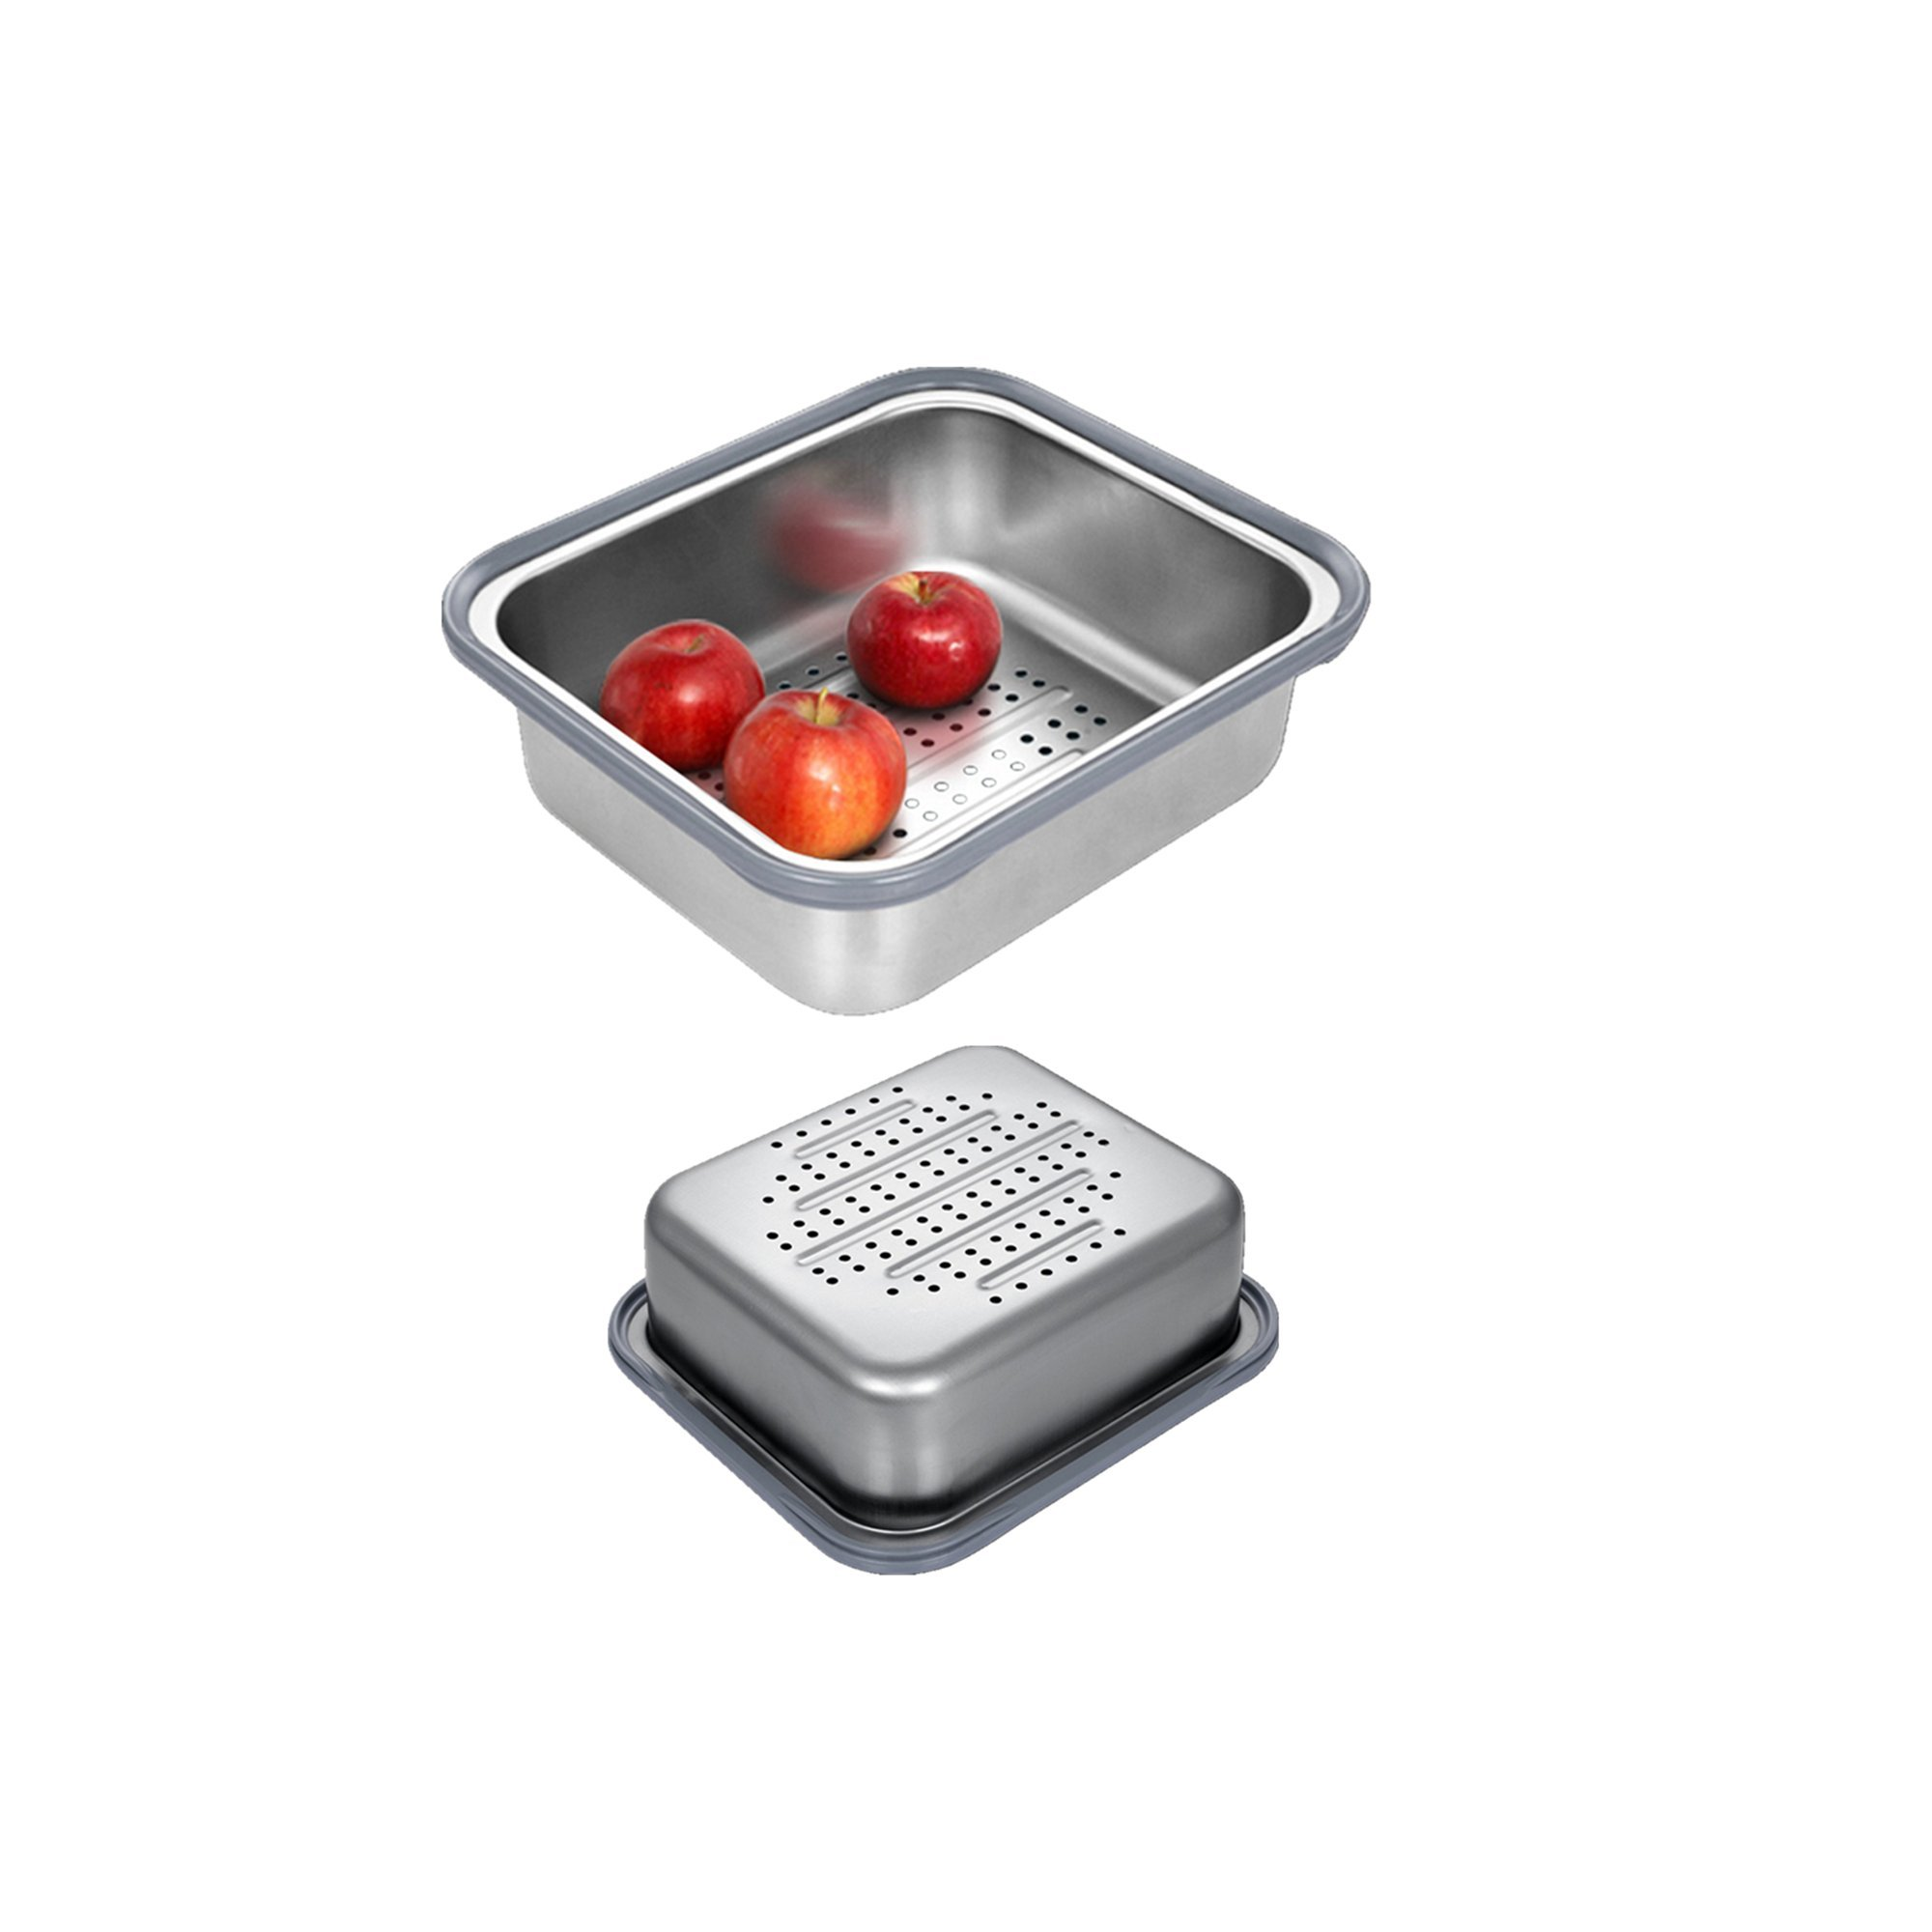 Drainer Basket for Fruit Basket and Vegetables, Drainer fruit,Drainer dish, Stainless steel,14.2x10.2x4 inch